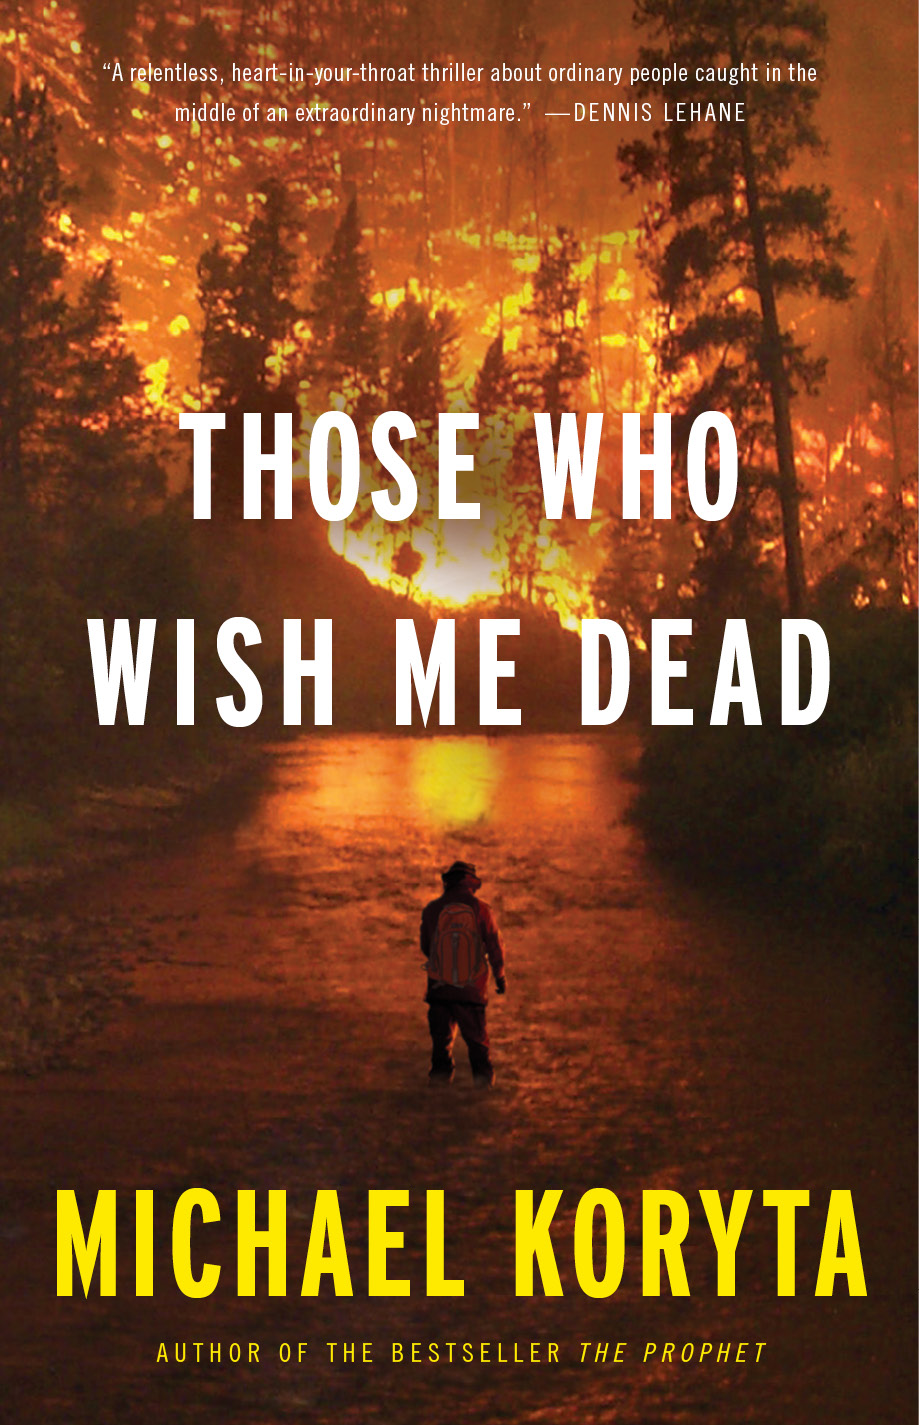 Those Who Wish Me Dead by Michael Koryta Amazon | Goodreads